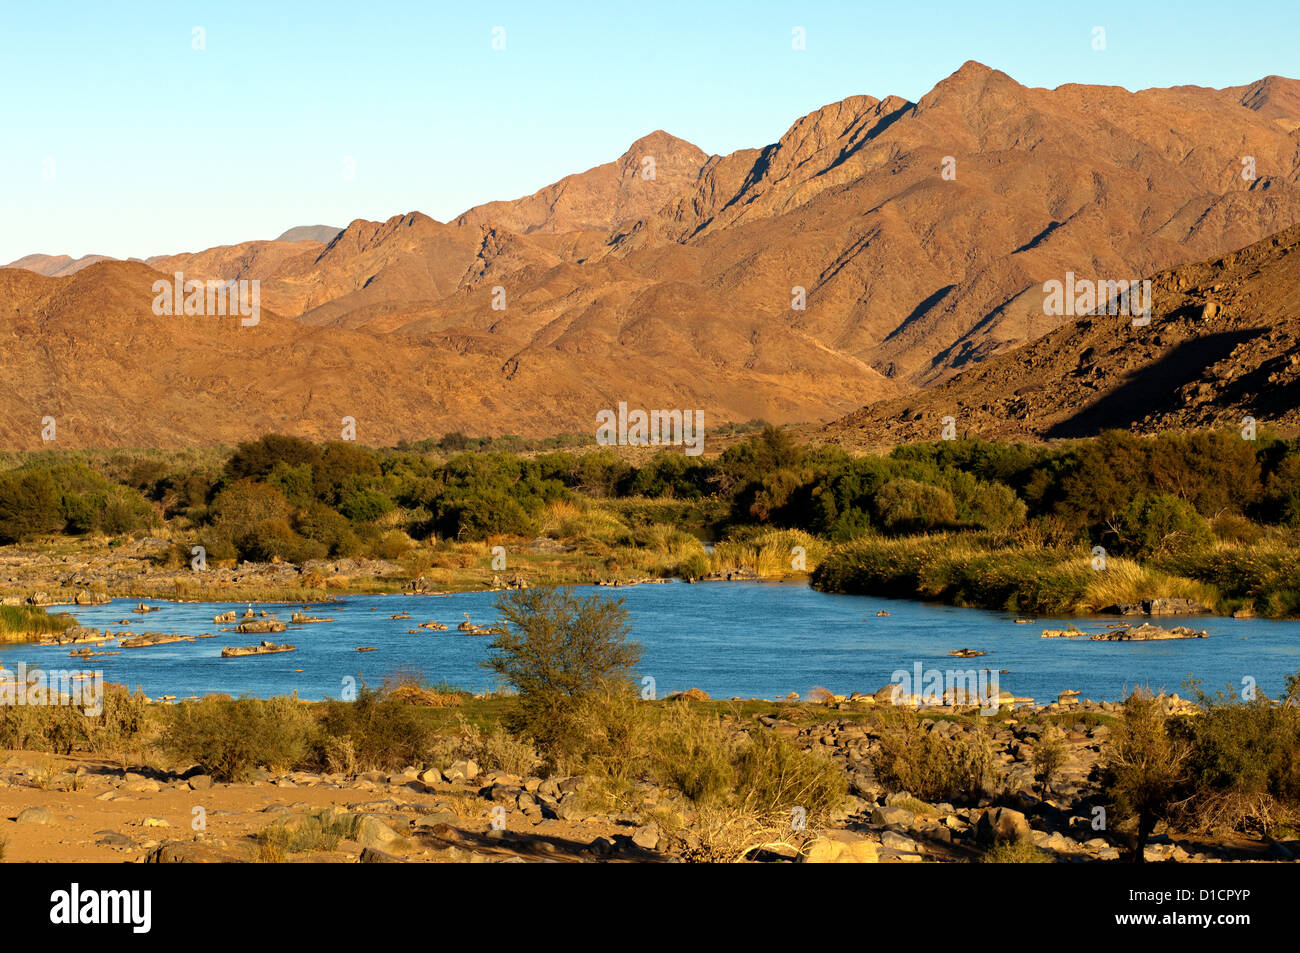 Valley of the Orange River in the Richtersveld Transfrontier National Park, view across the river to Namibia, South - Stock Image